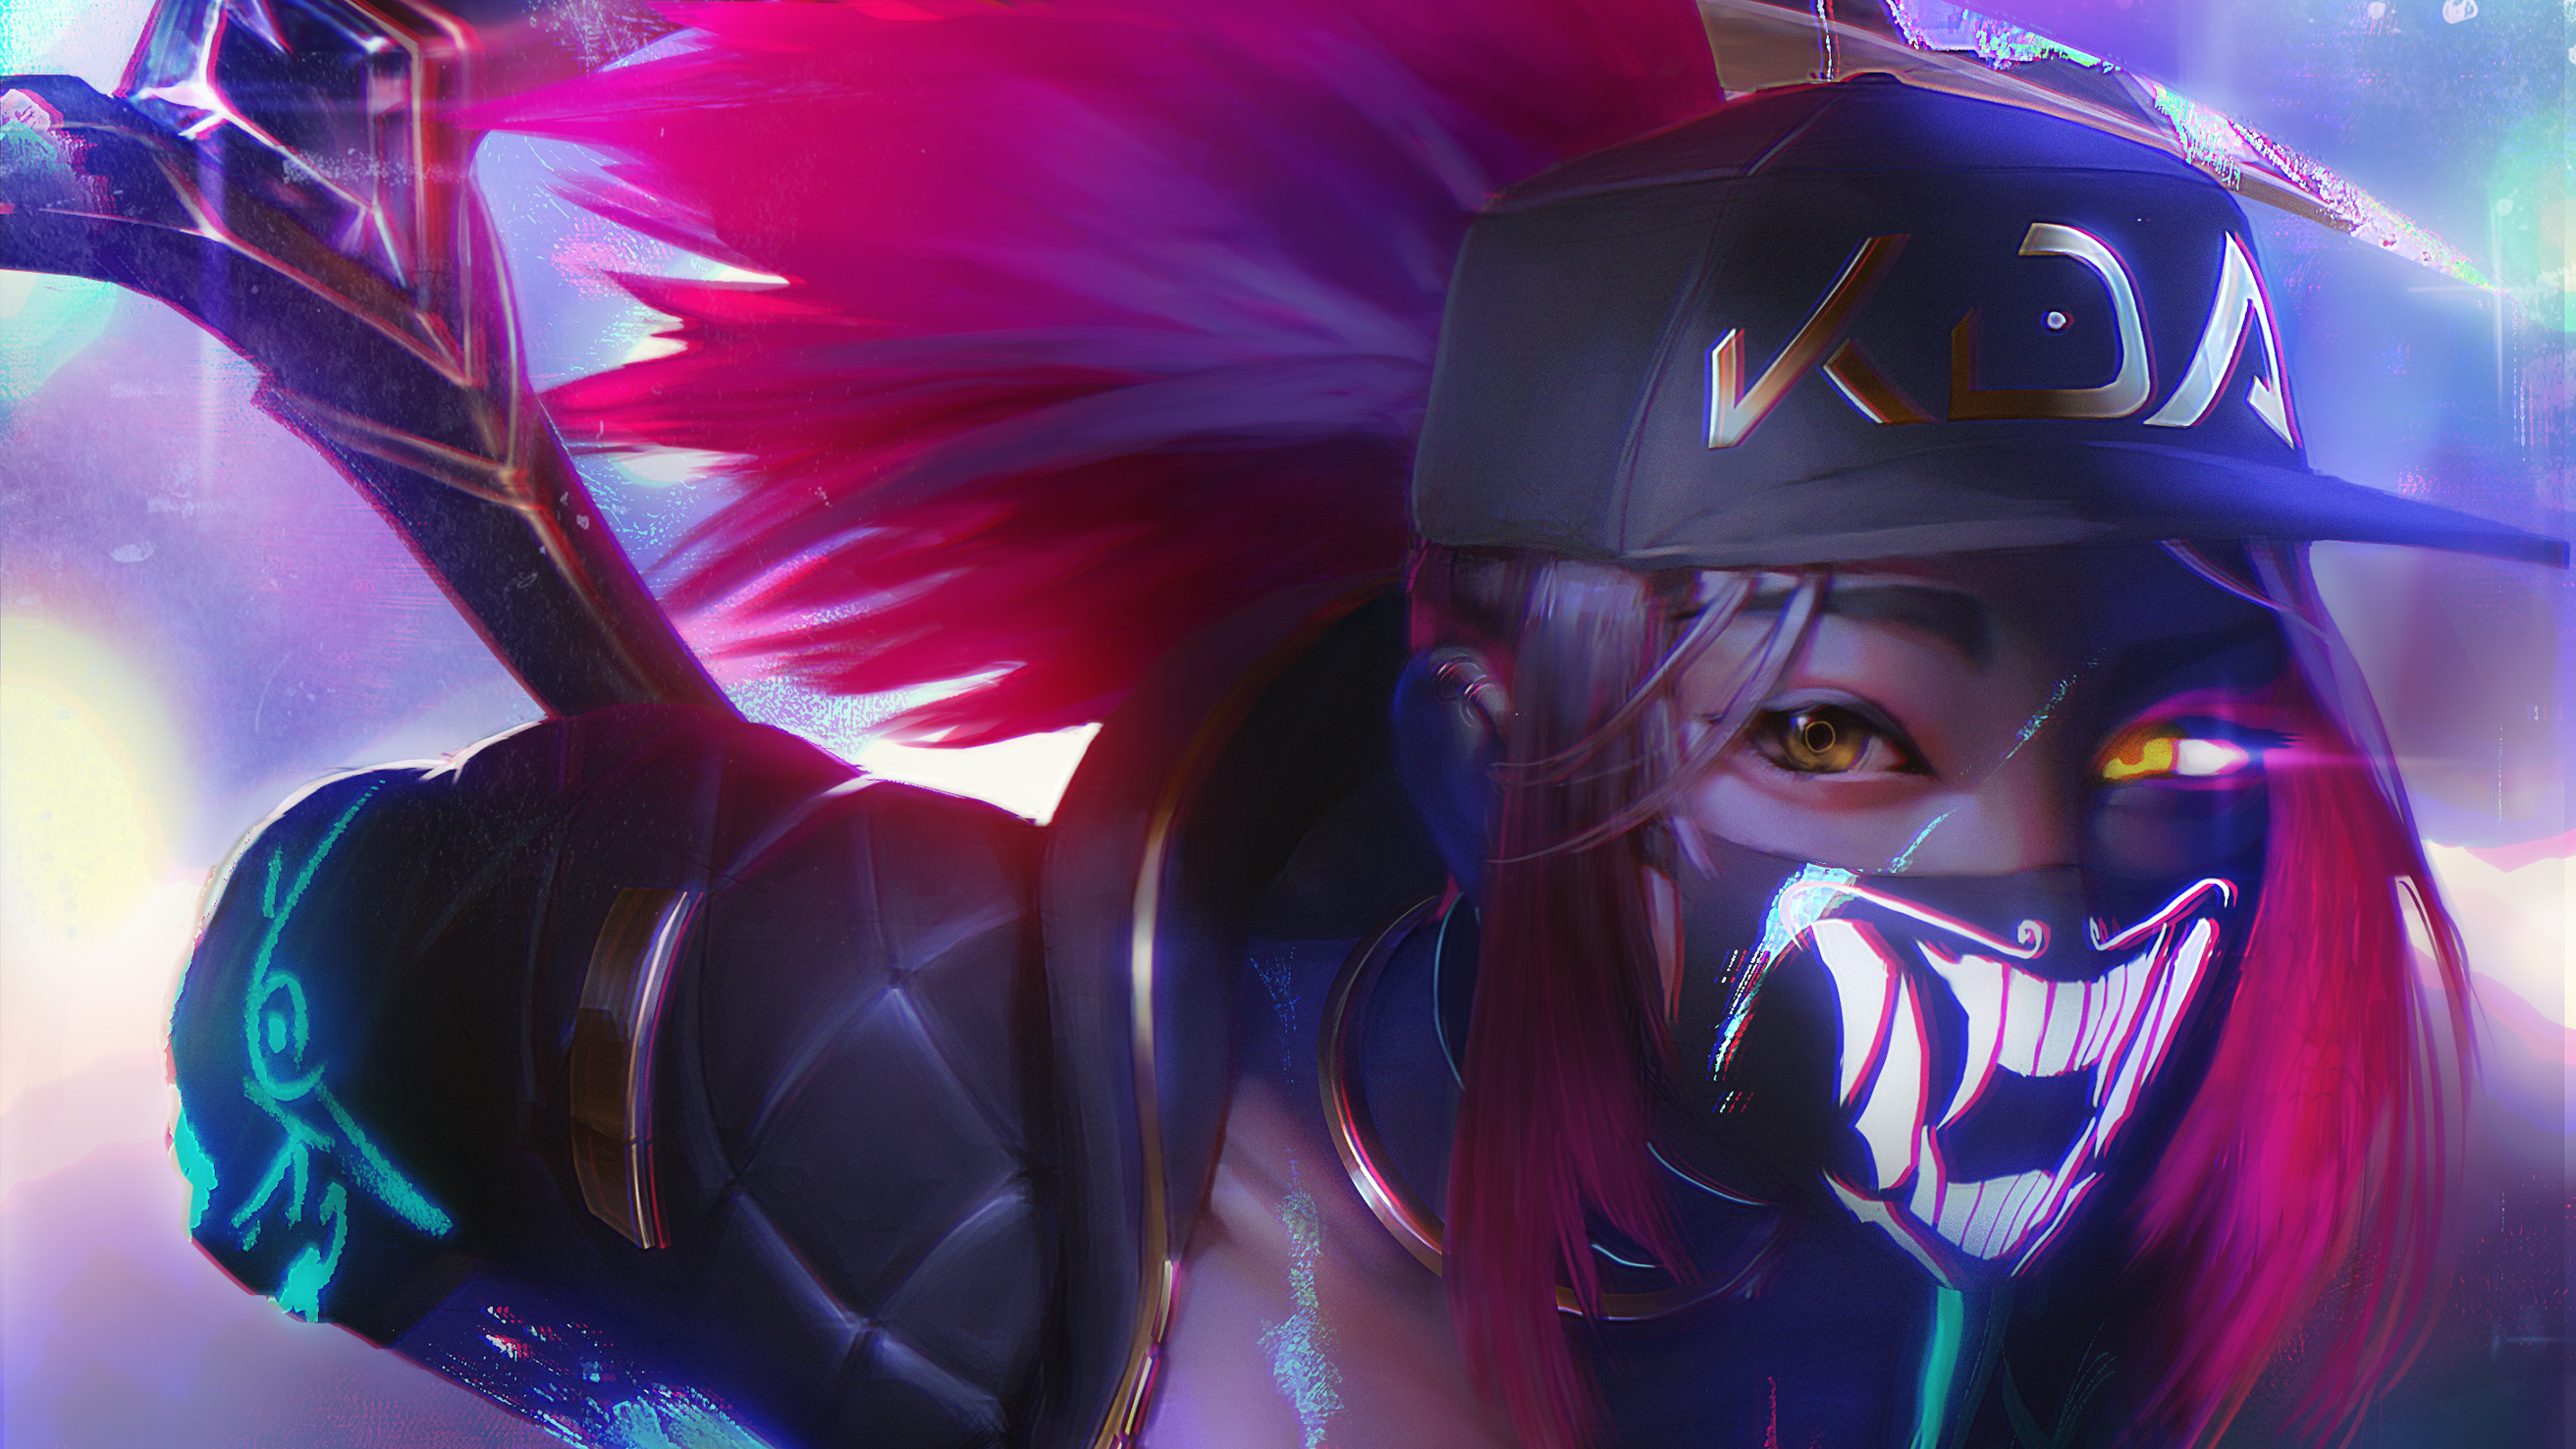 Kda Akali Fan Art Hd Games 4k Wallpapers Images Backgrounds Photos And Pictures